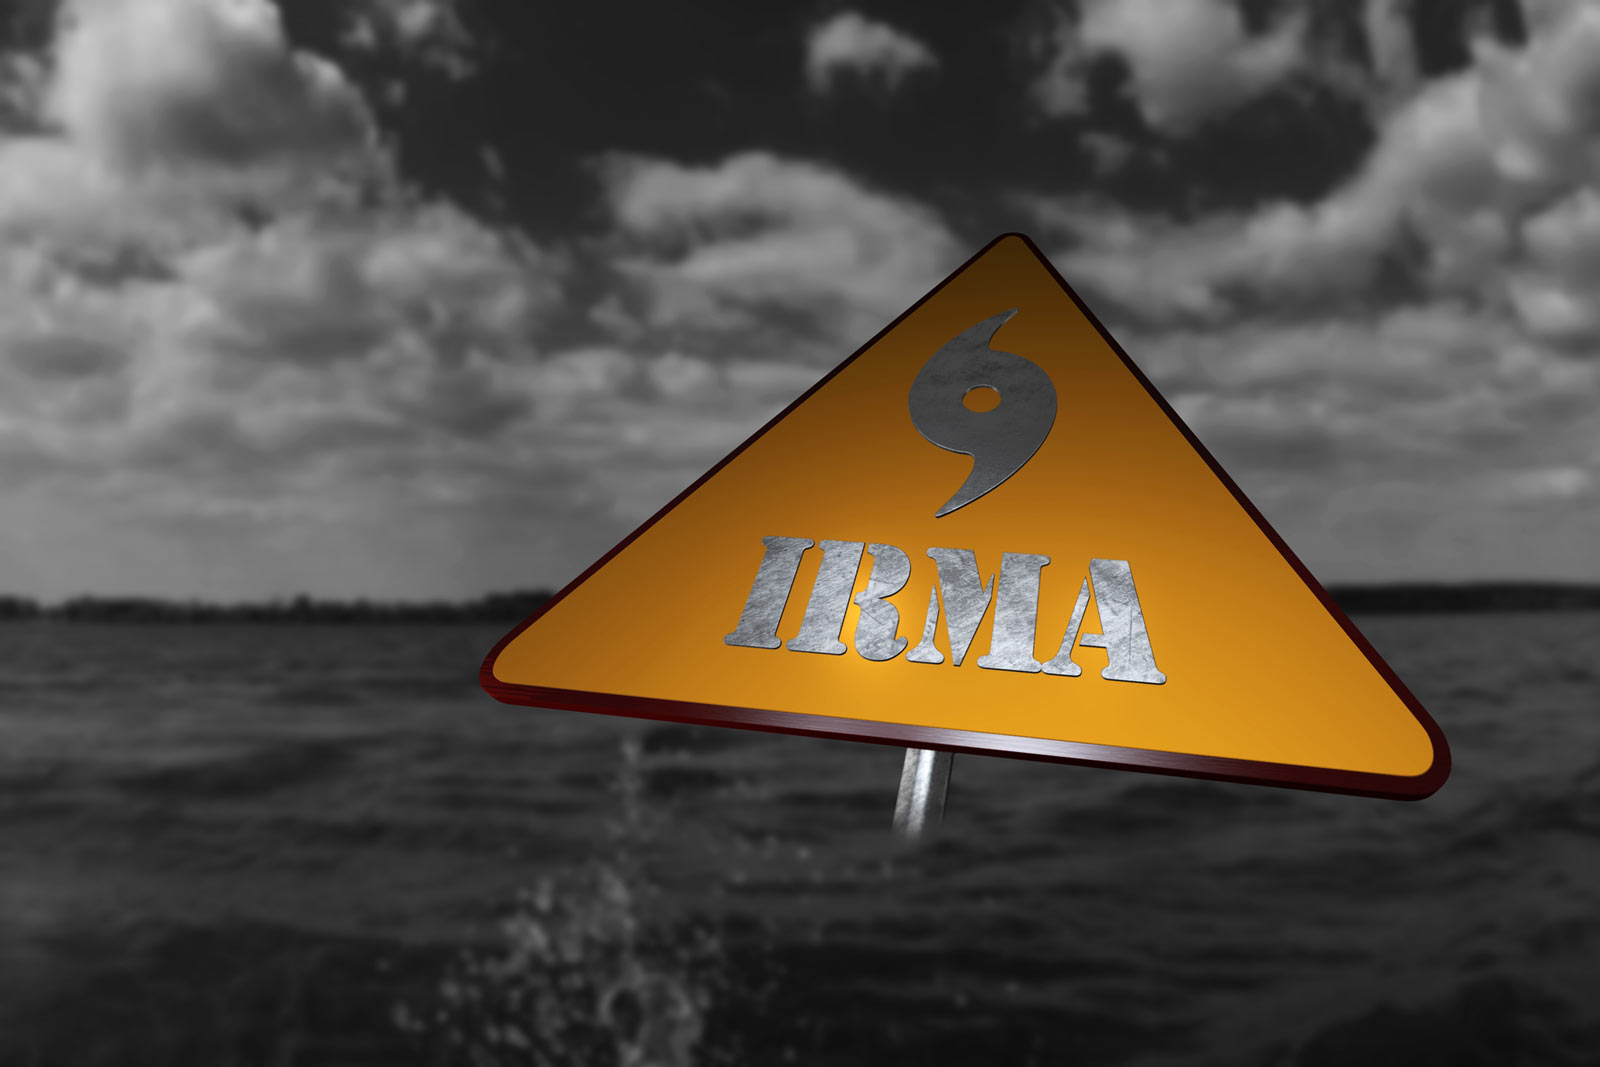 hurricane Irma warning sign with a background of stormy water